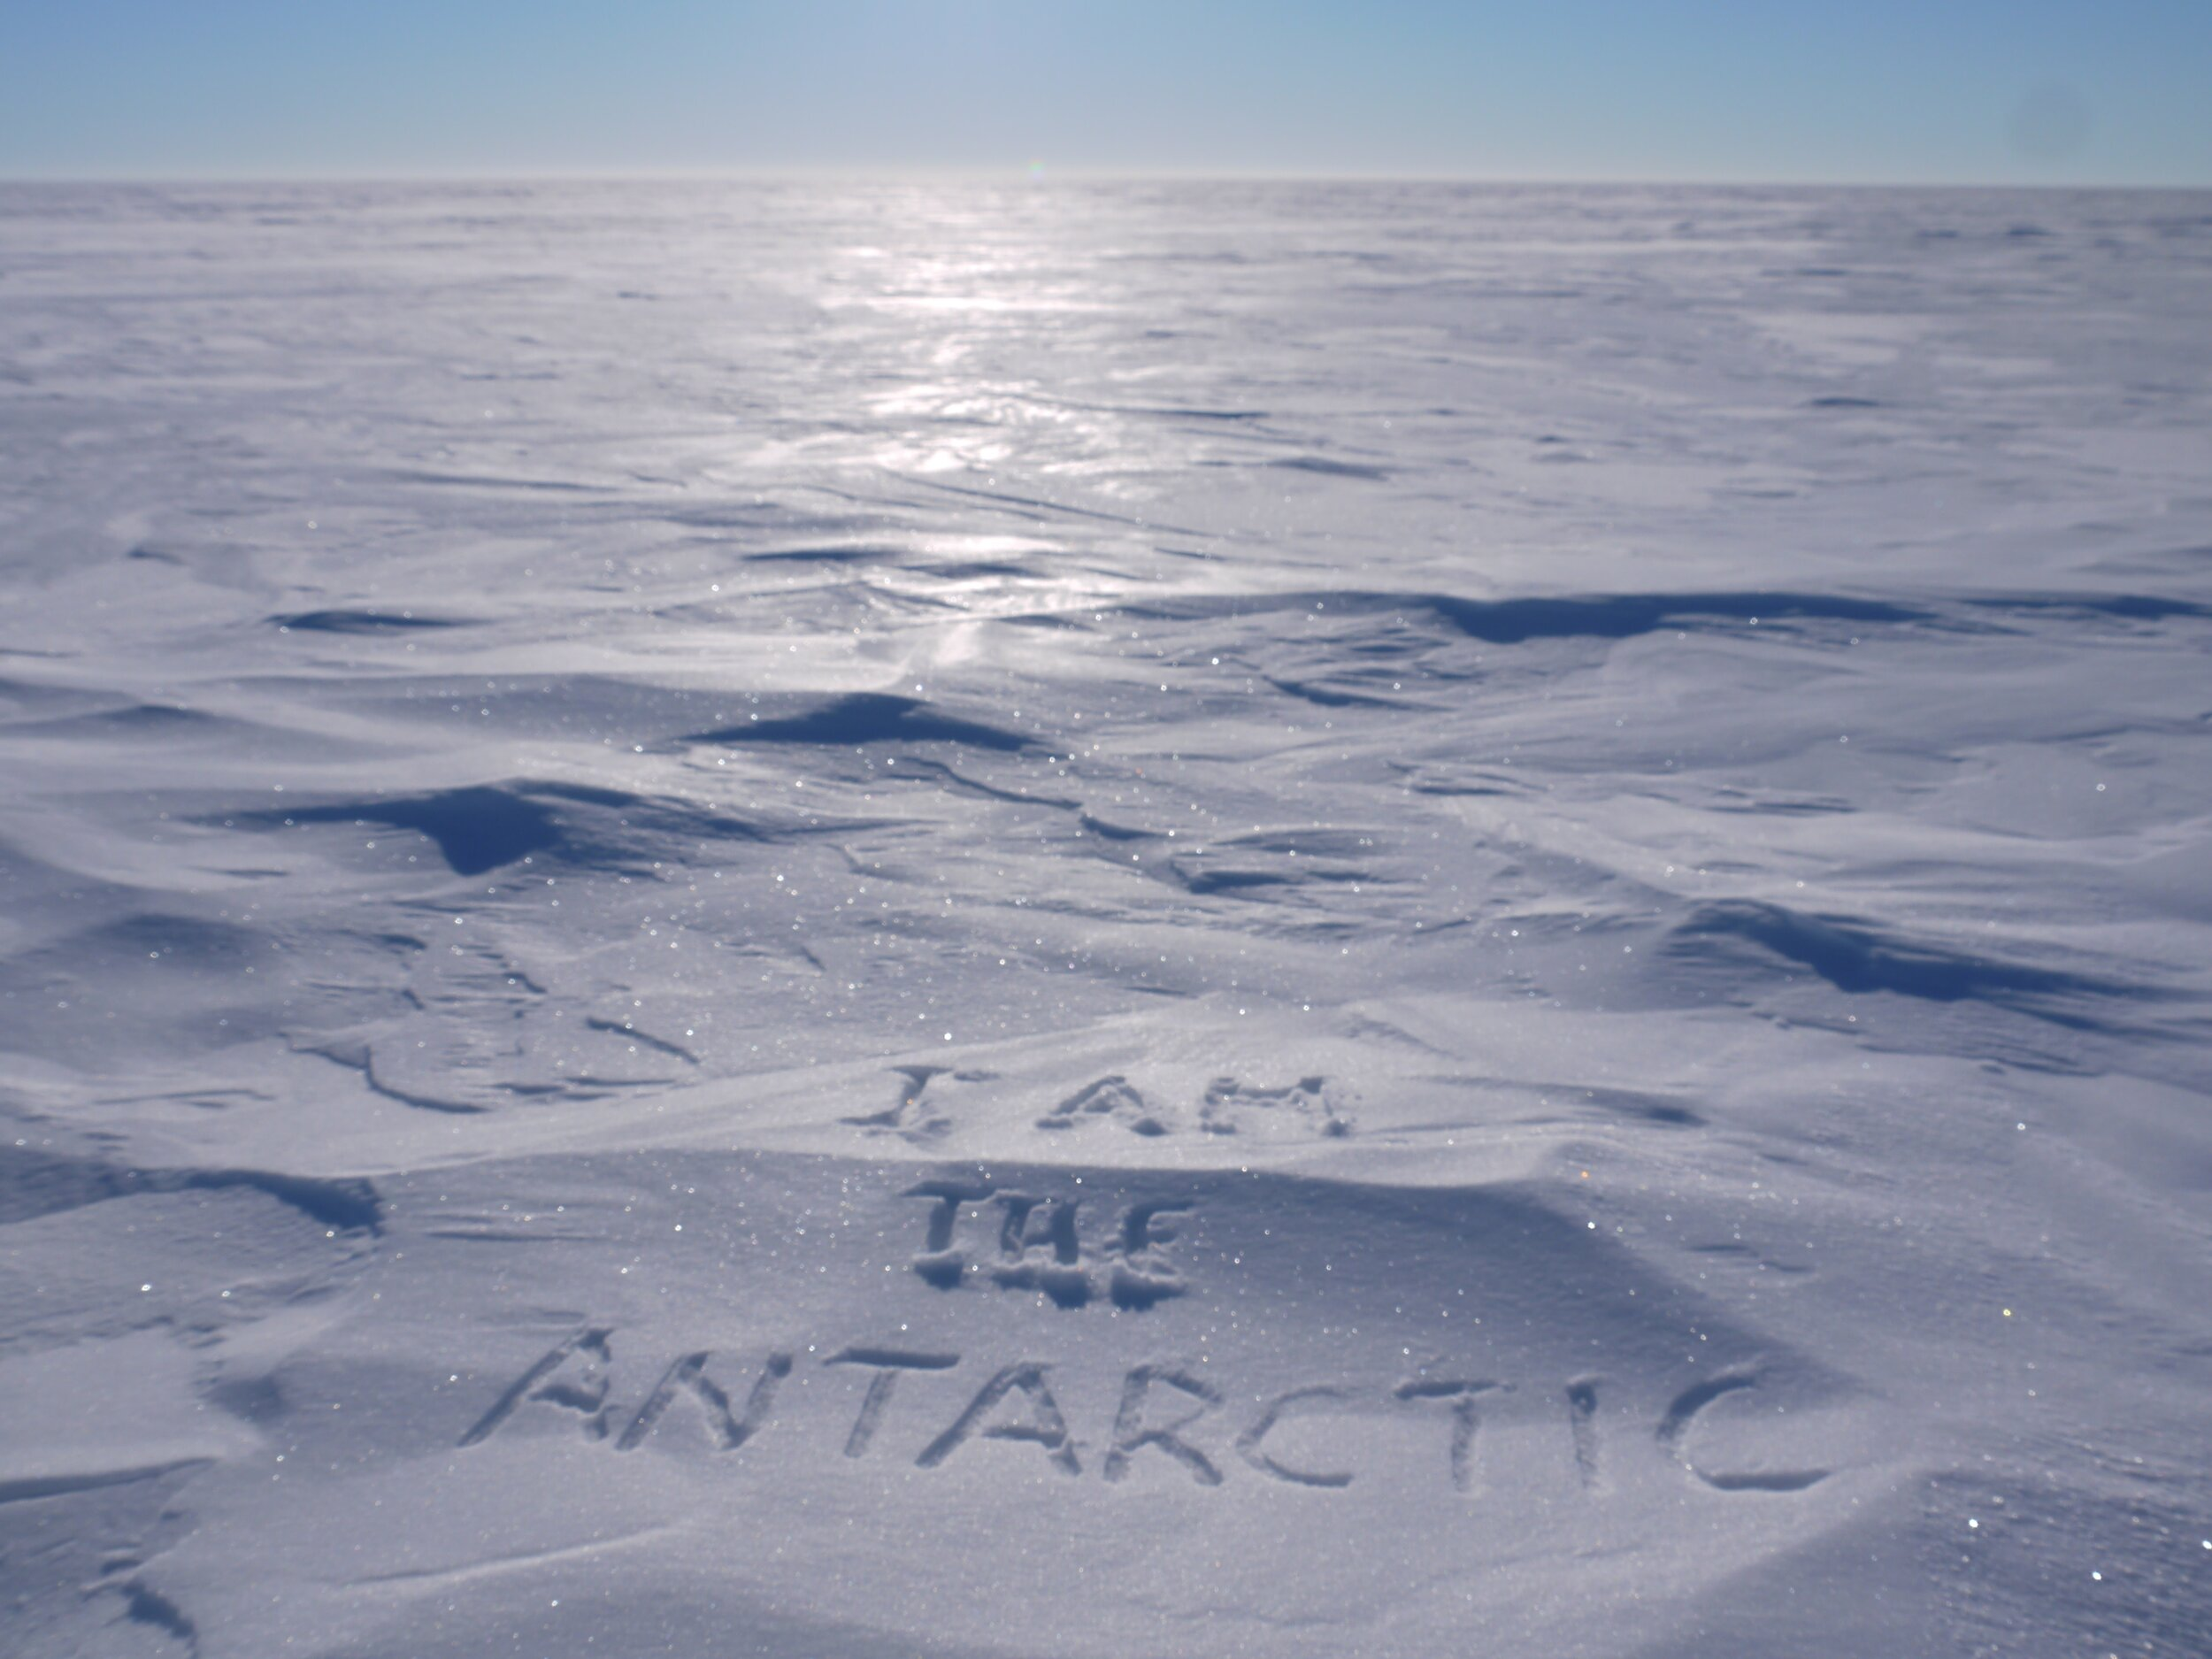 A message Worsley scrawled in the snow on his second expedition down South. Photo: Joanna Worsley